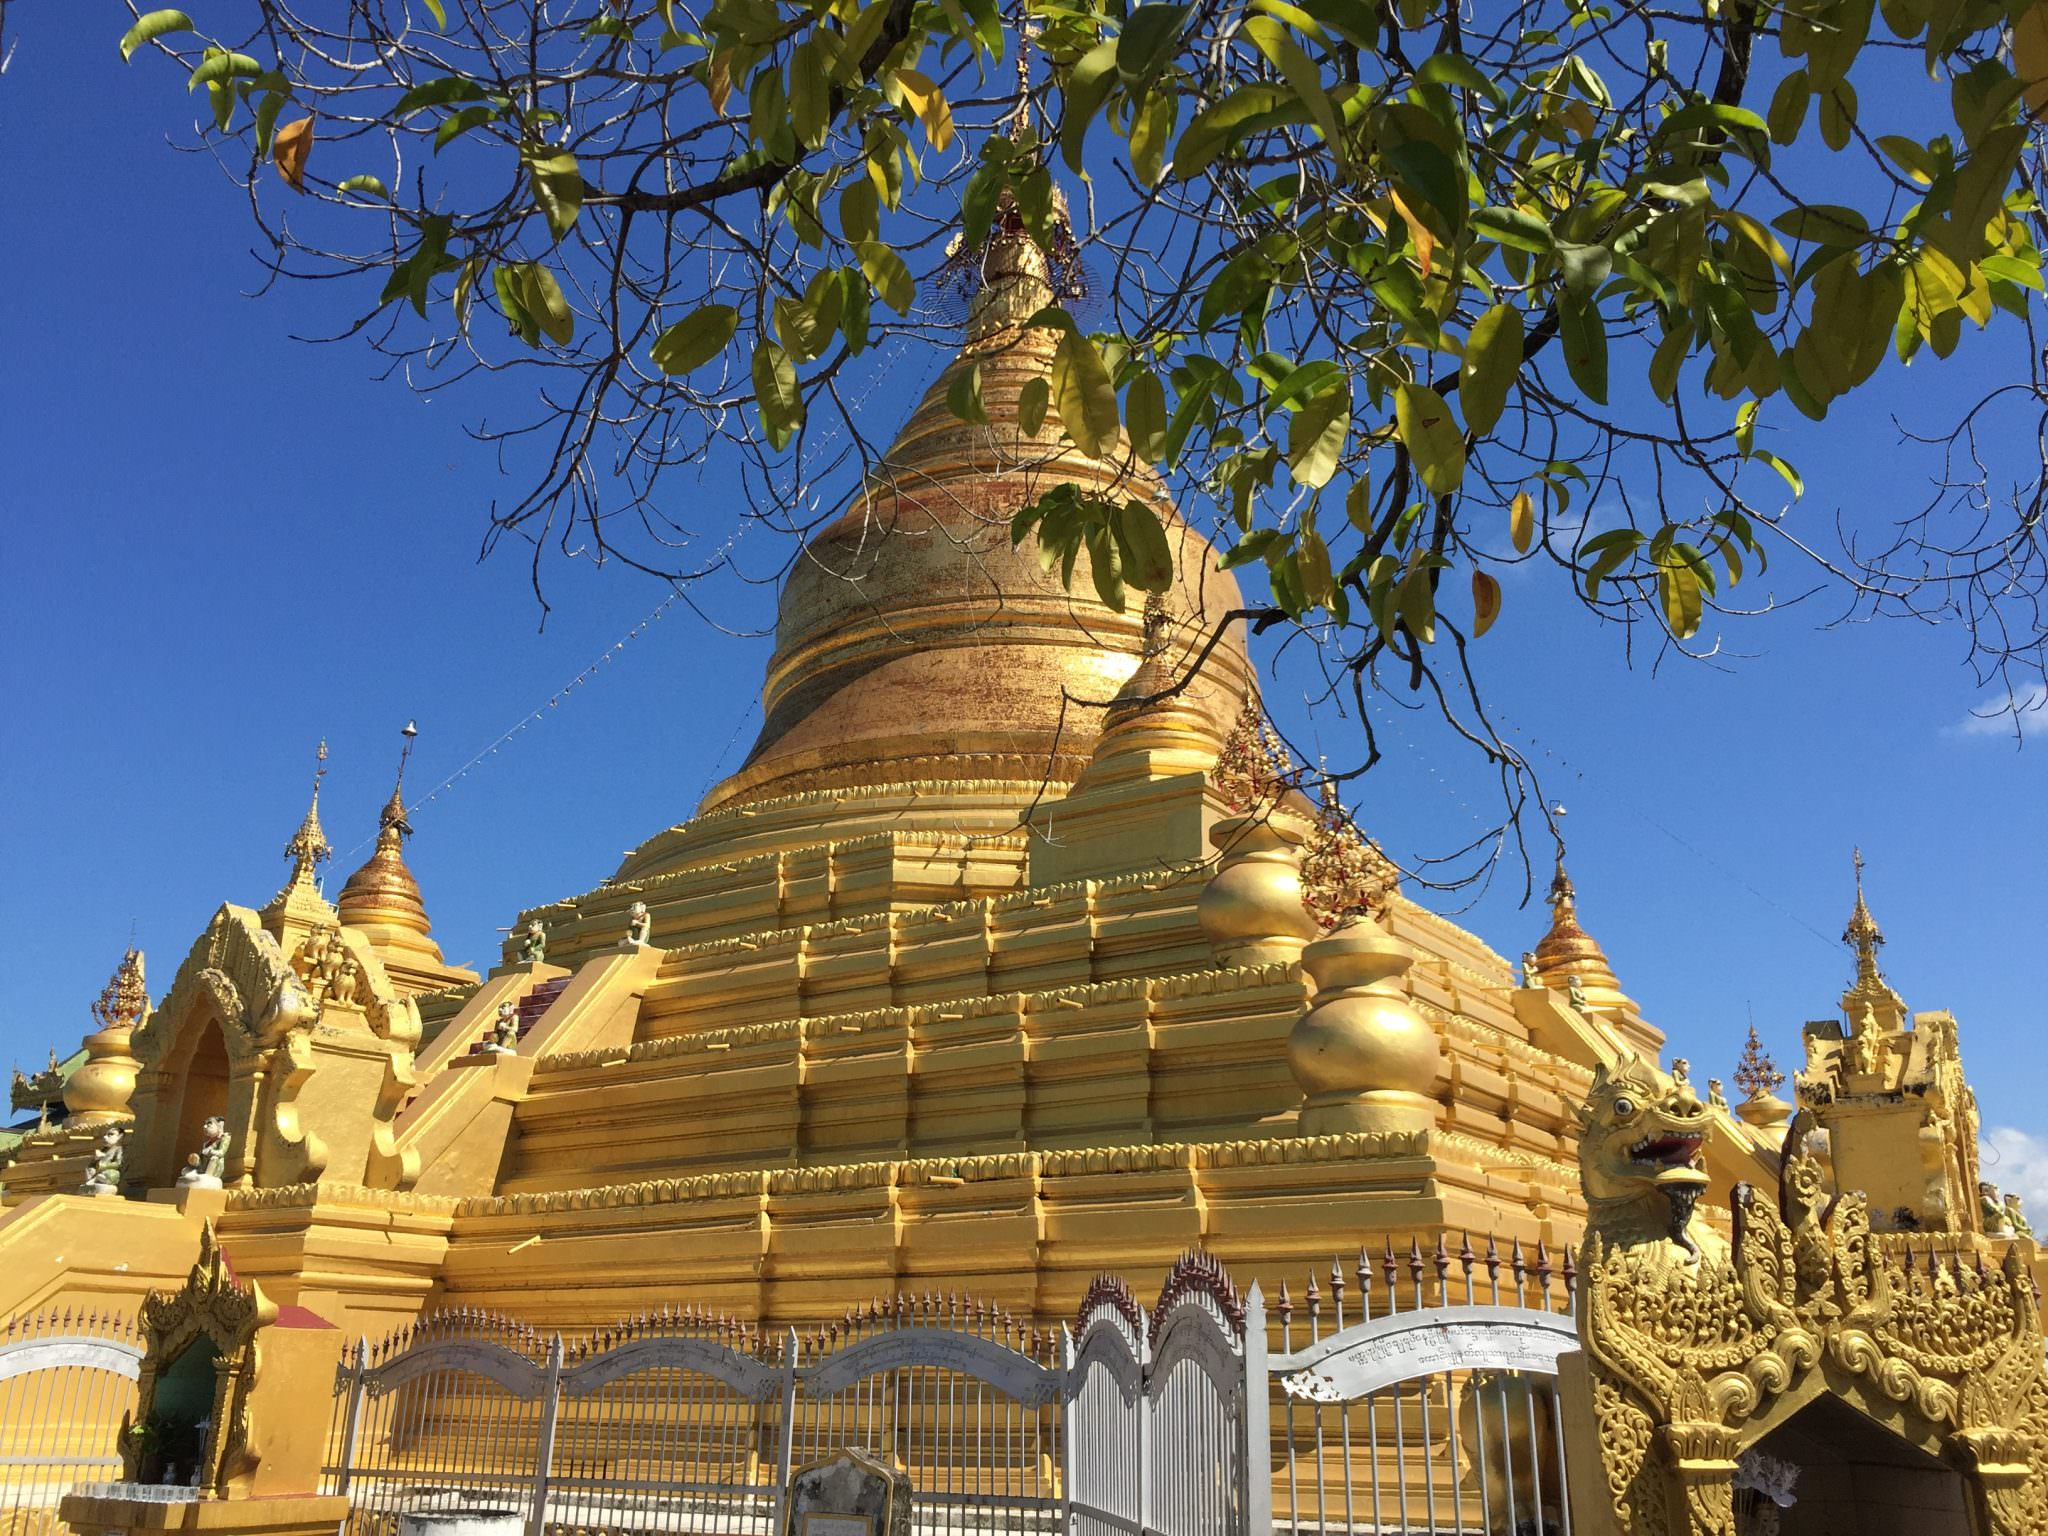 The central and primary stupa in the pagoda complex, Kuthodaw. © 2015 Gail Jessen